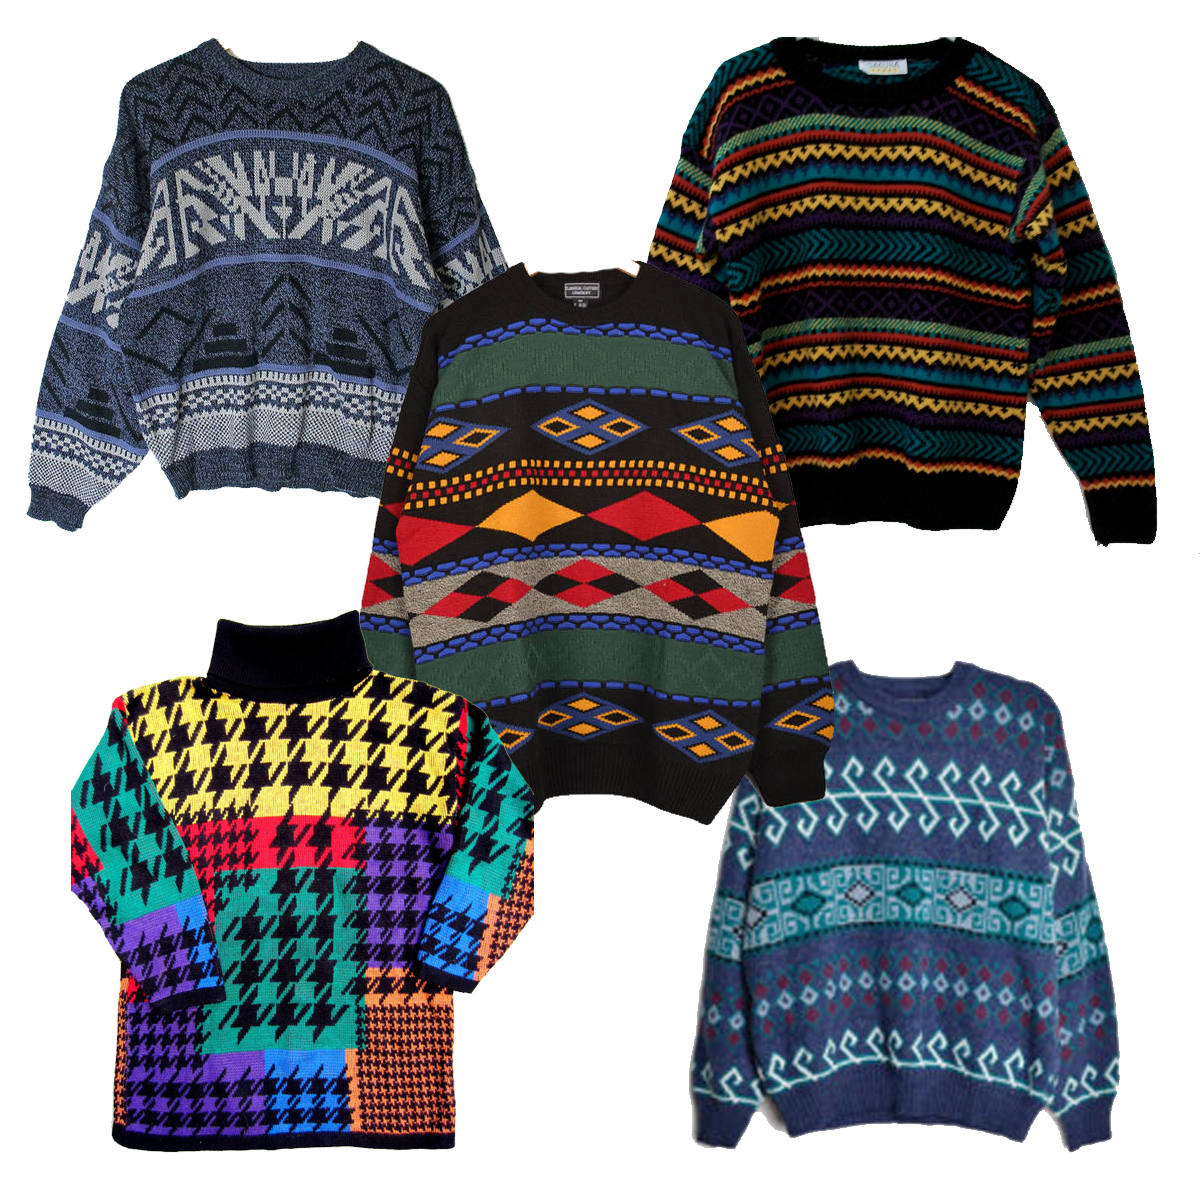 Vintage Sweater Mix